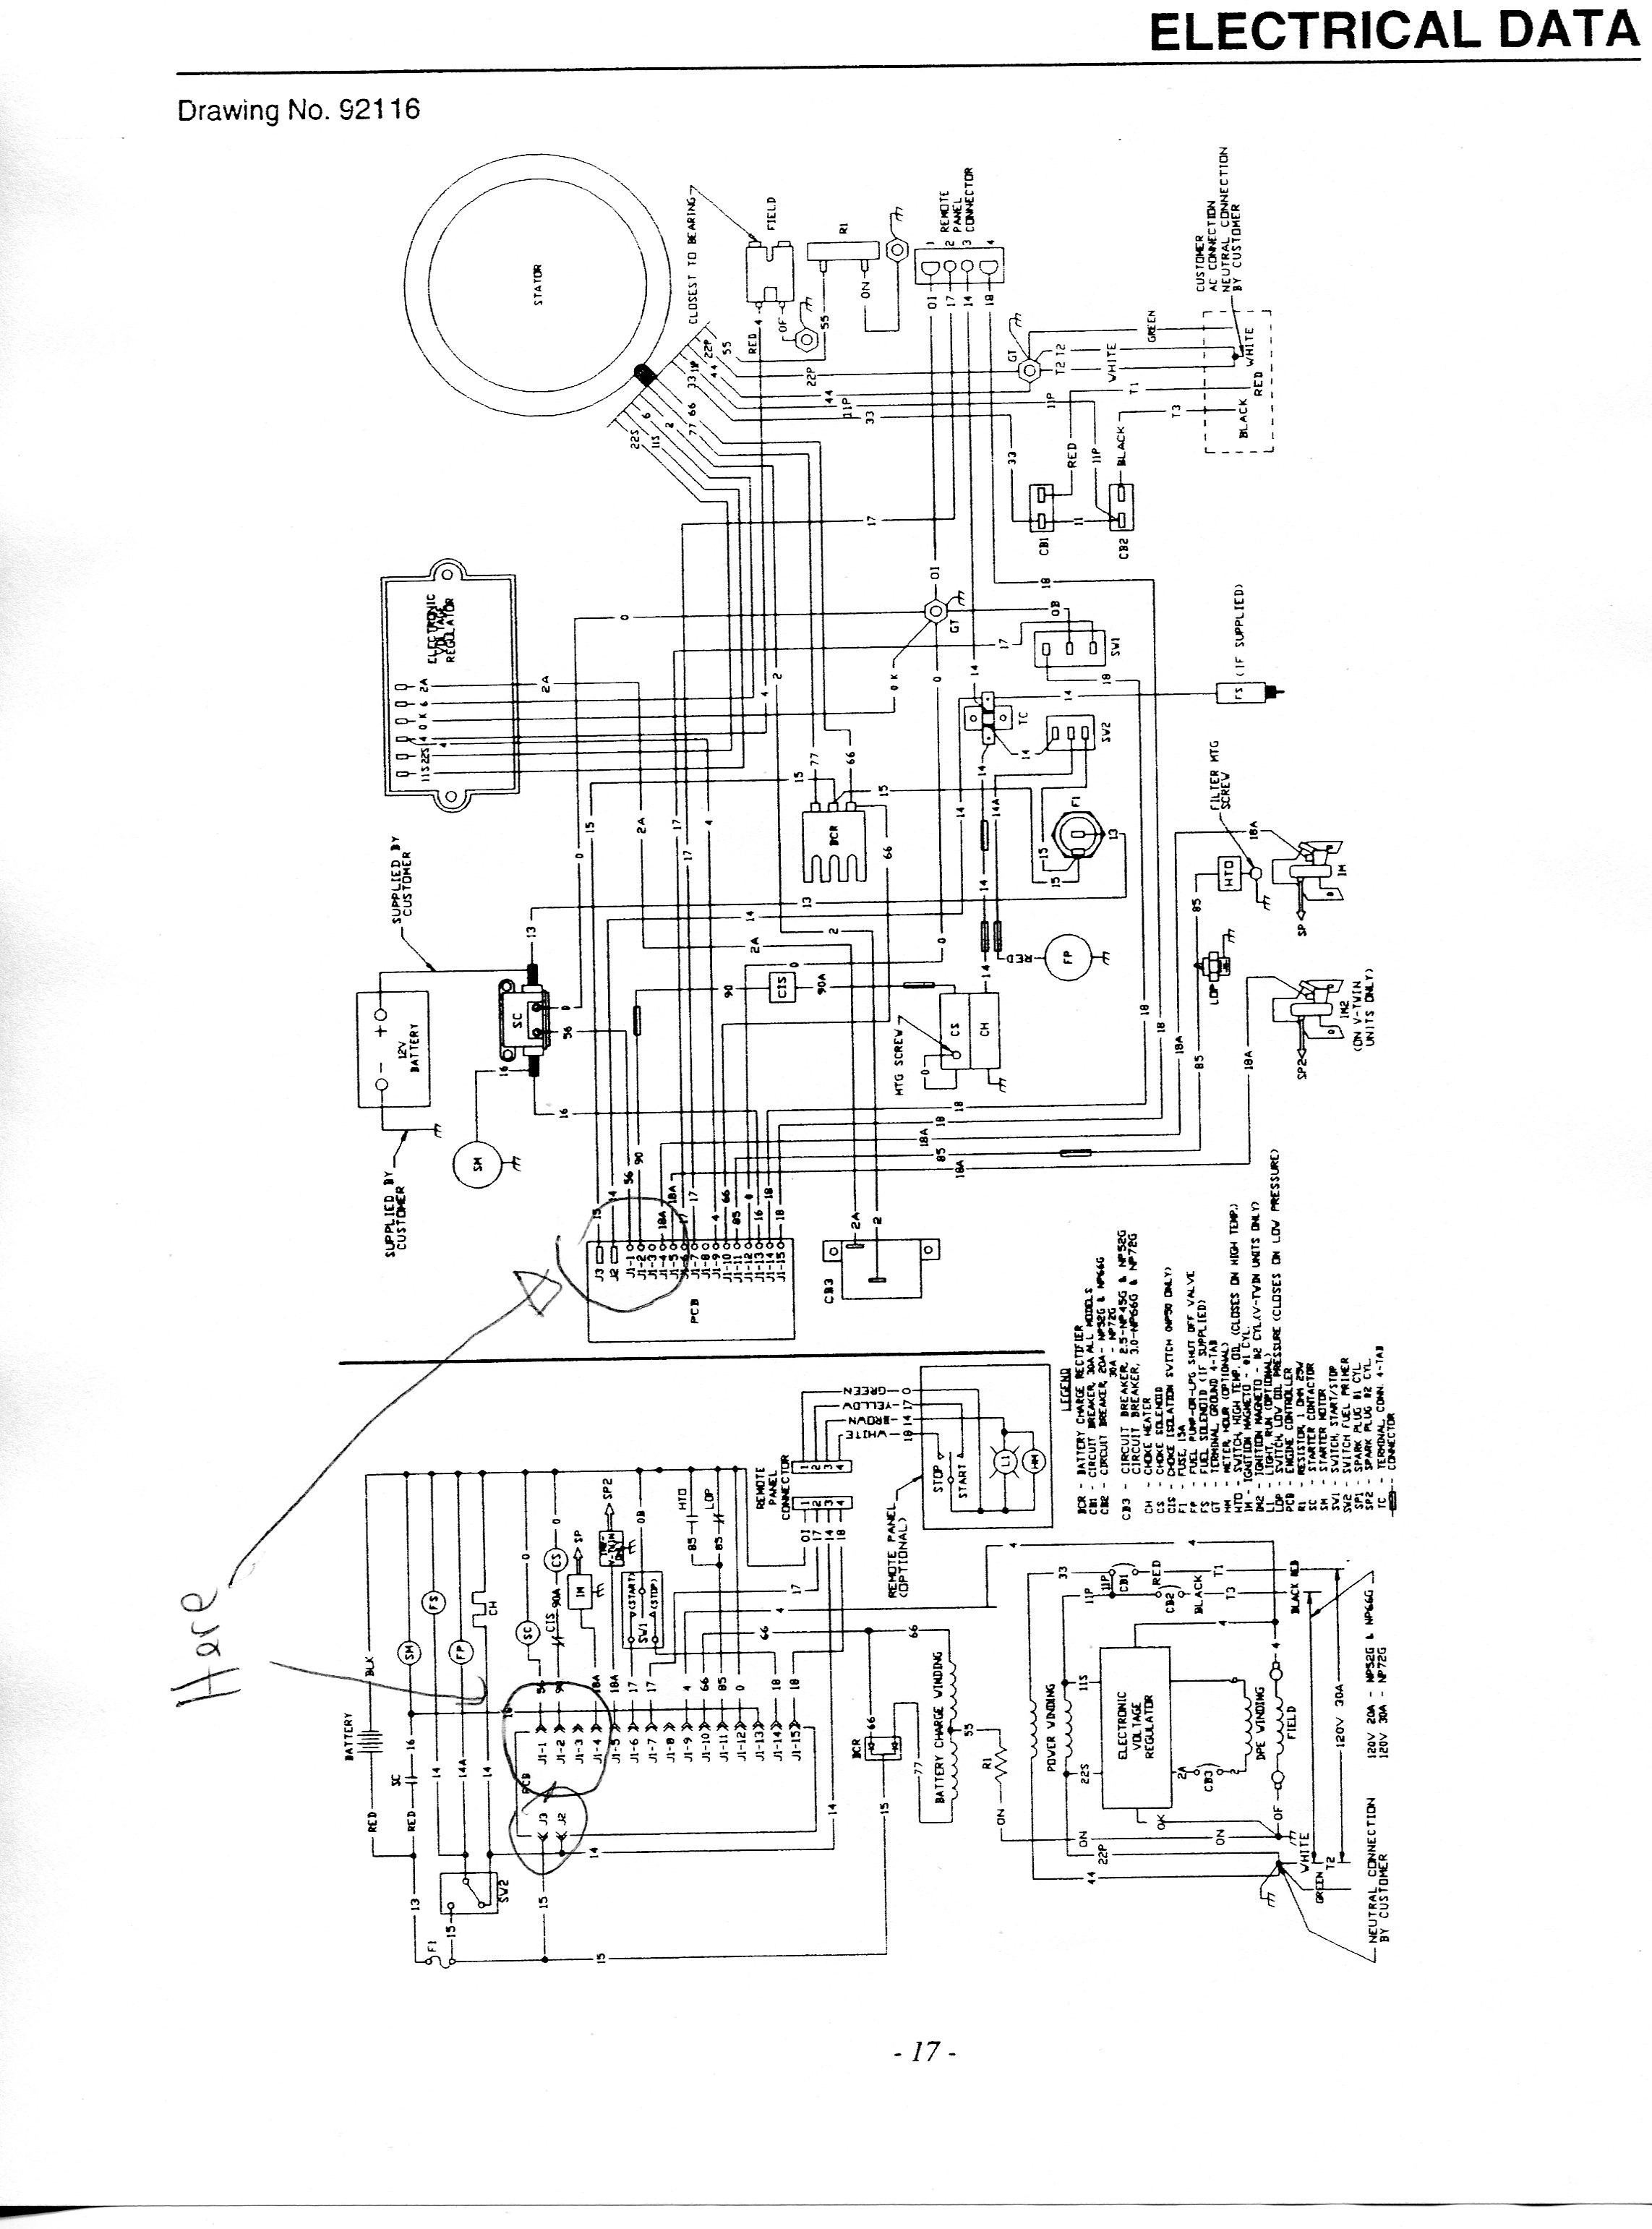 Diagram  Wiring Diagram For Generac Transfer Switch Full